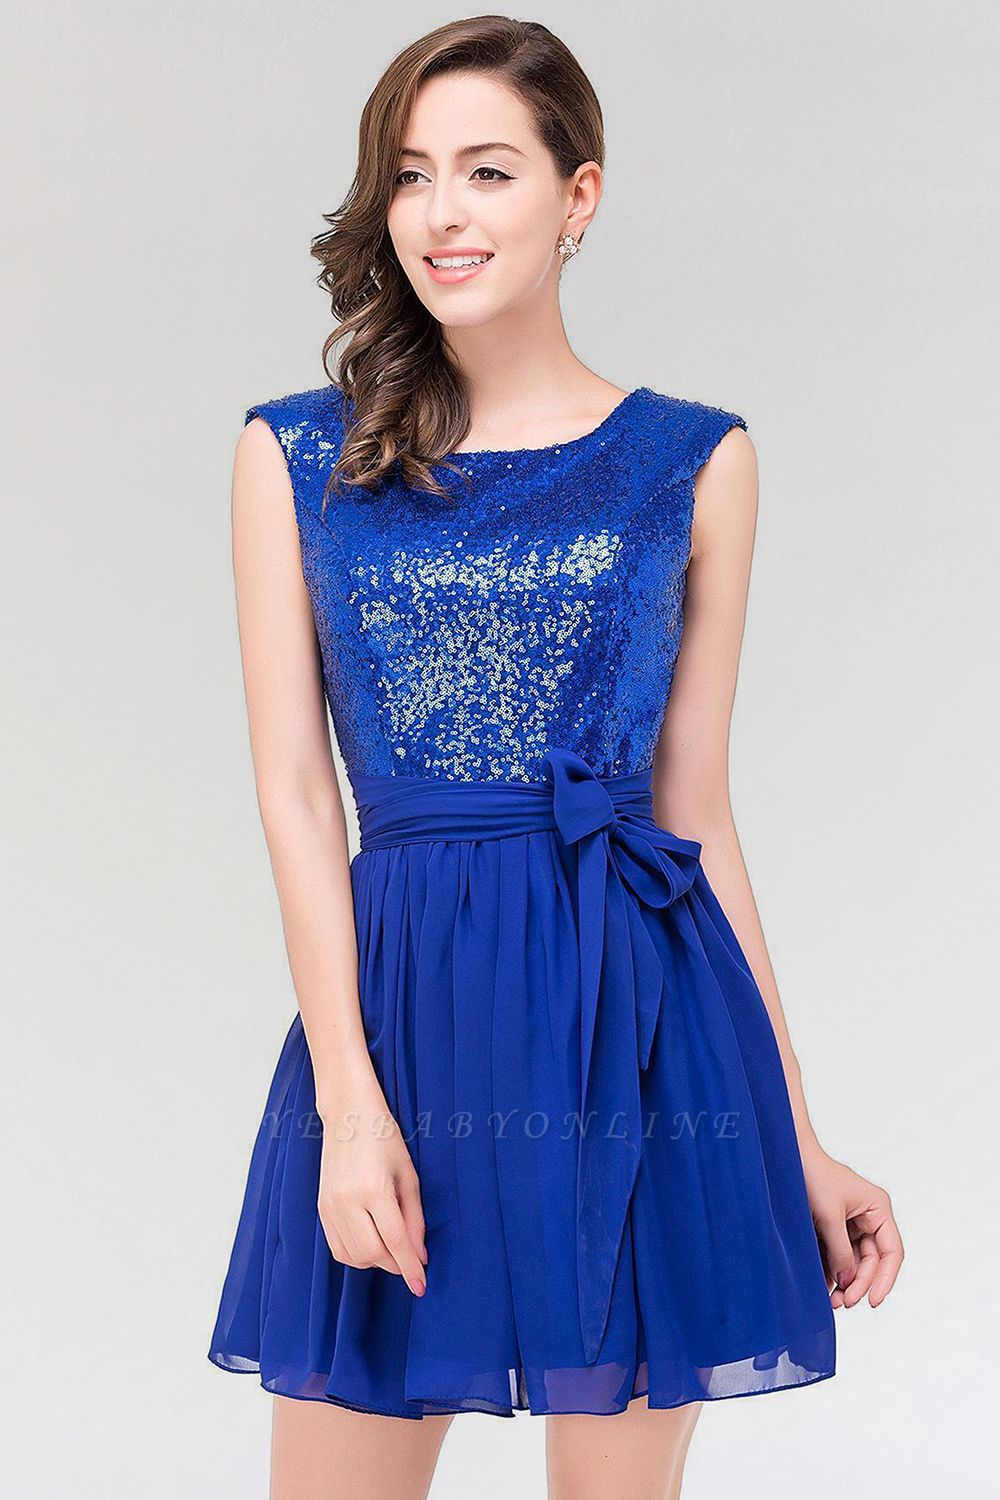 A-line  Square Sleeveless Bow Ruffles Mini Bridesmaid Dress with Sequins